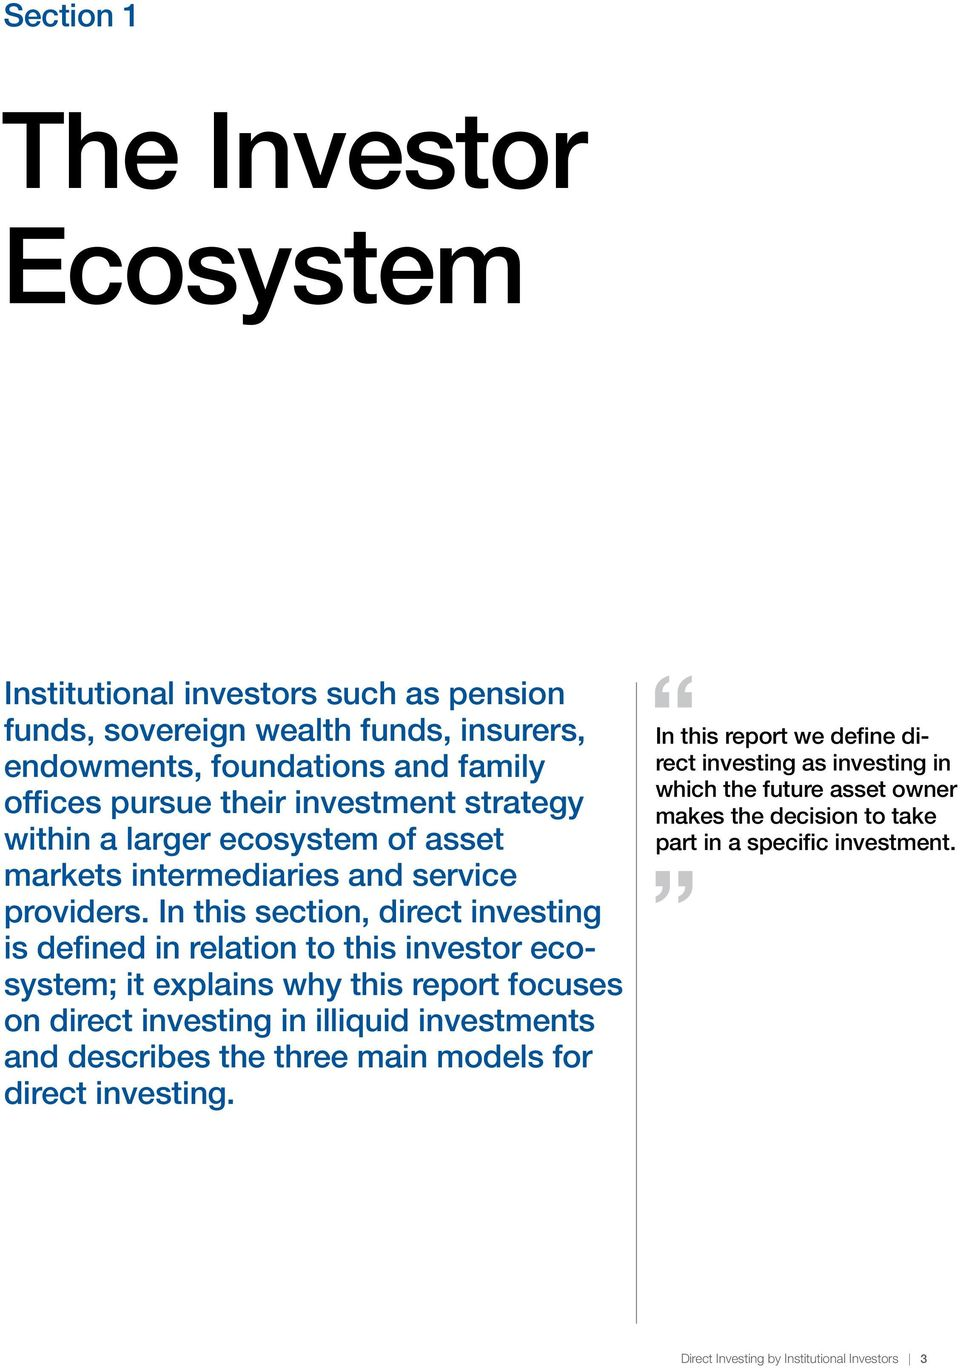 In this section, direct investing is defined in relation to this investor ecosystem; it explains why this report focuses on direct investing in illiquid investments and